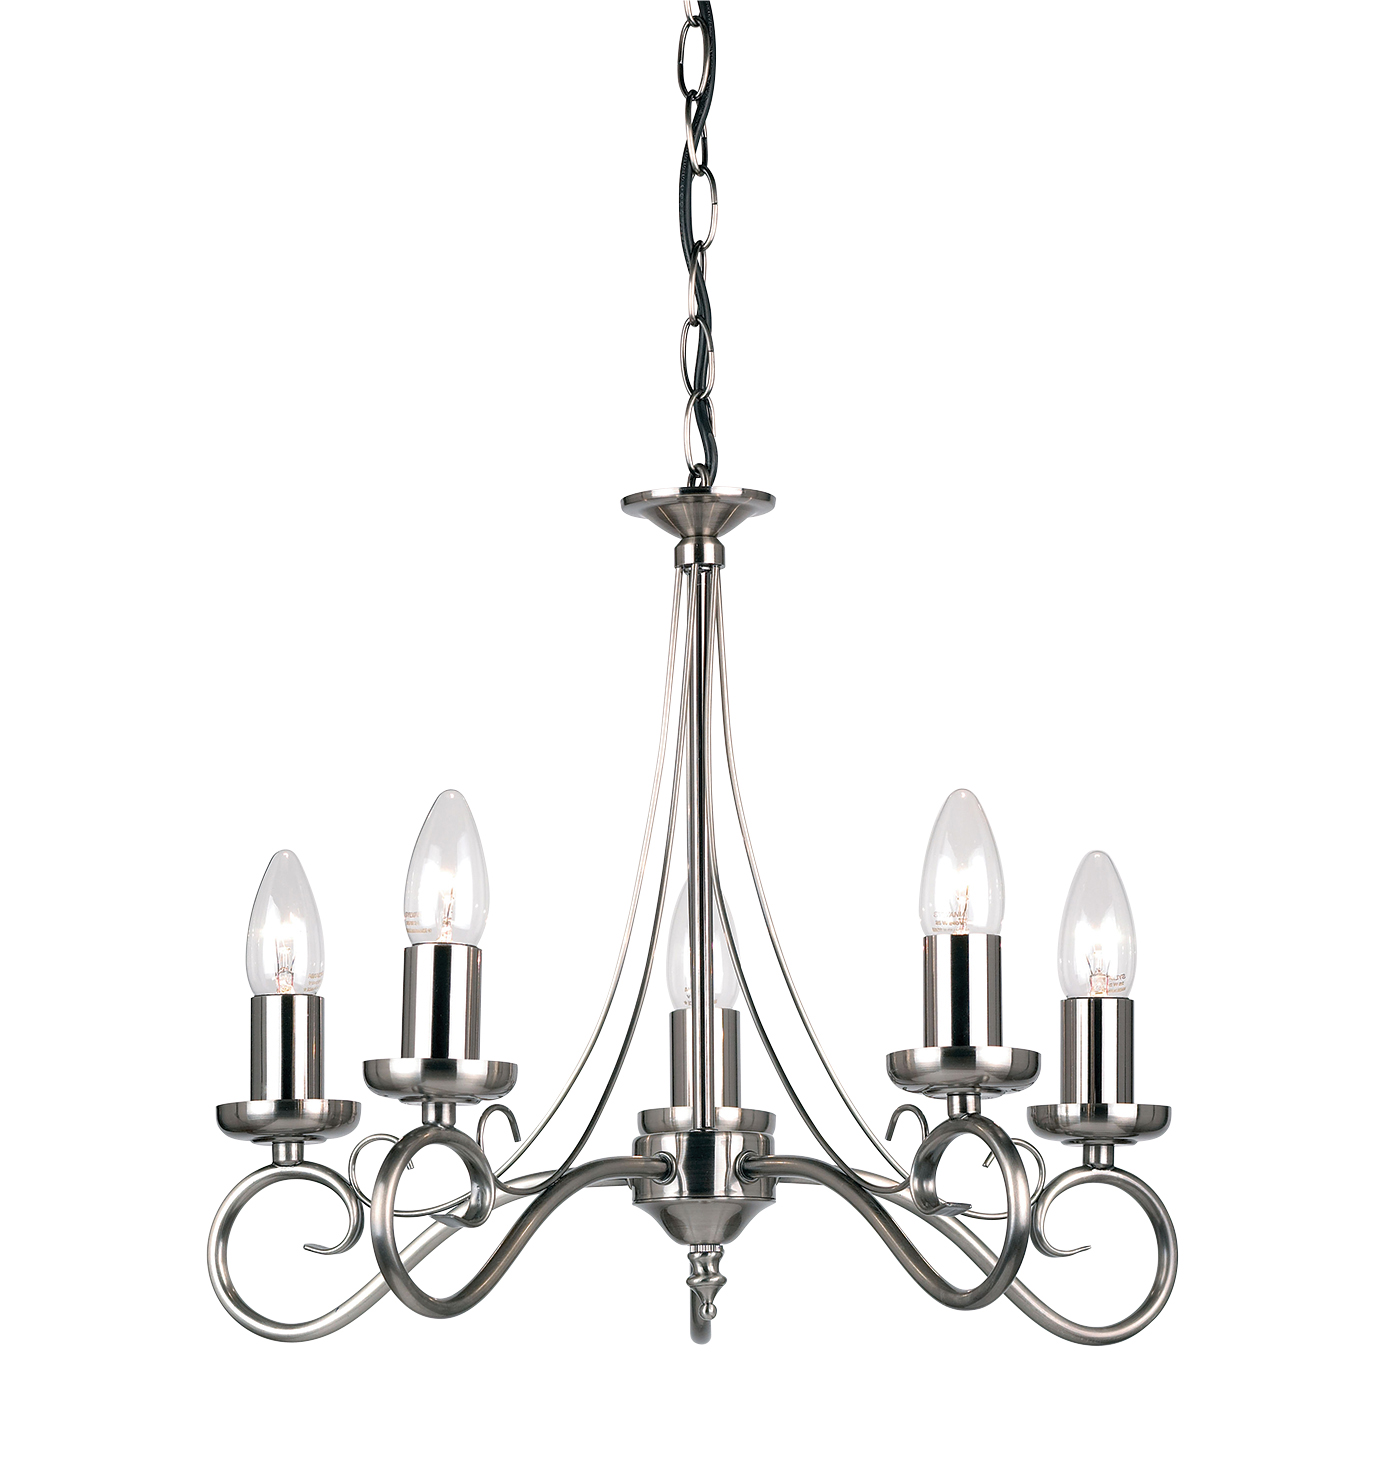 Endon Trafford chandelier 5x 60W Antique silver effect plate